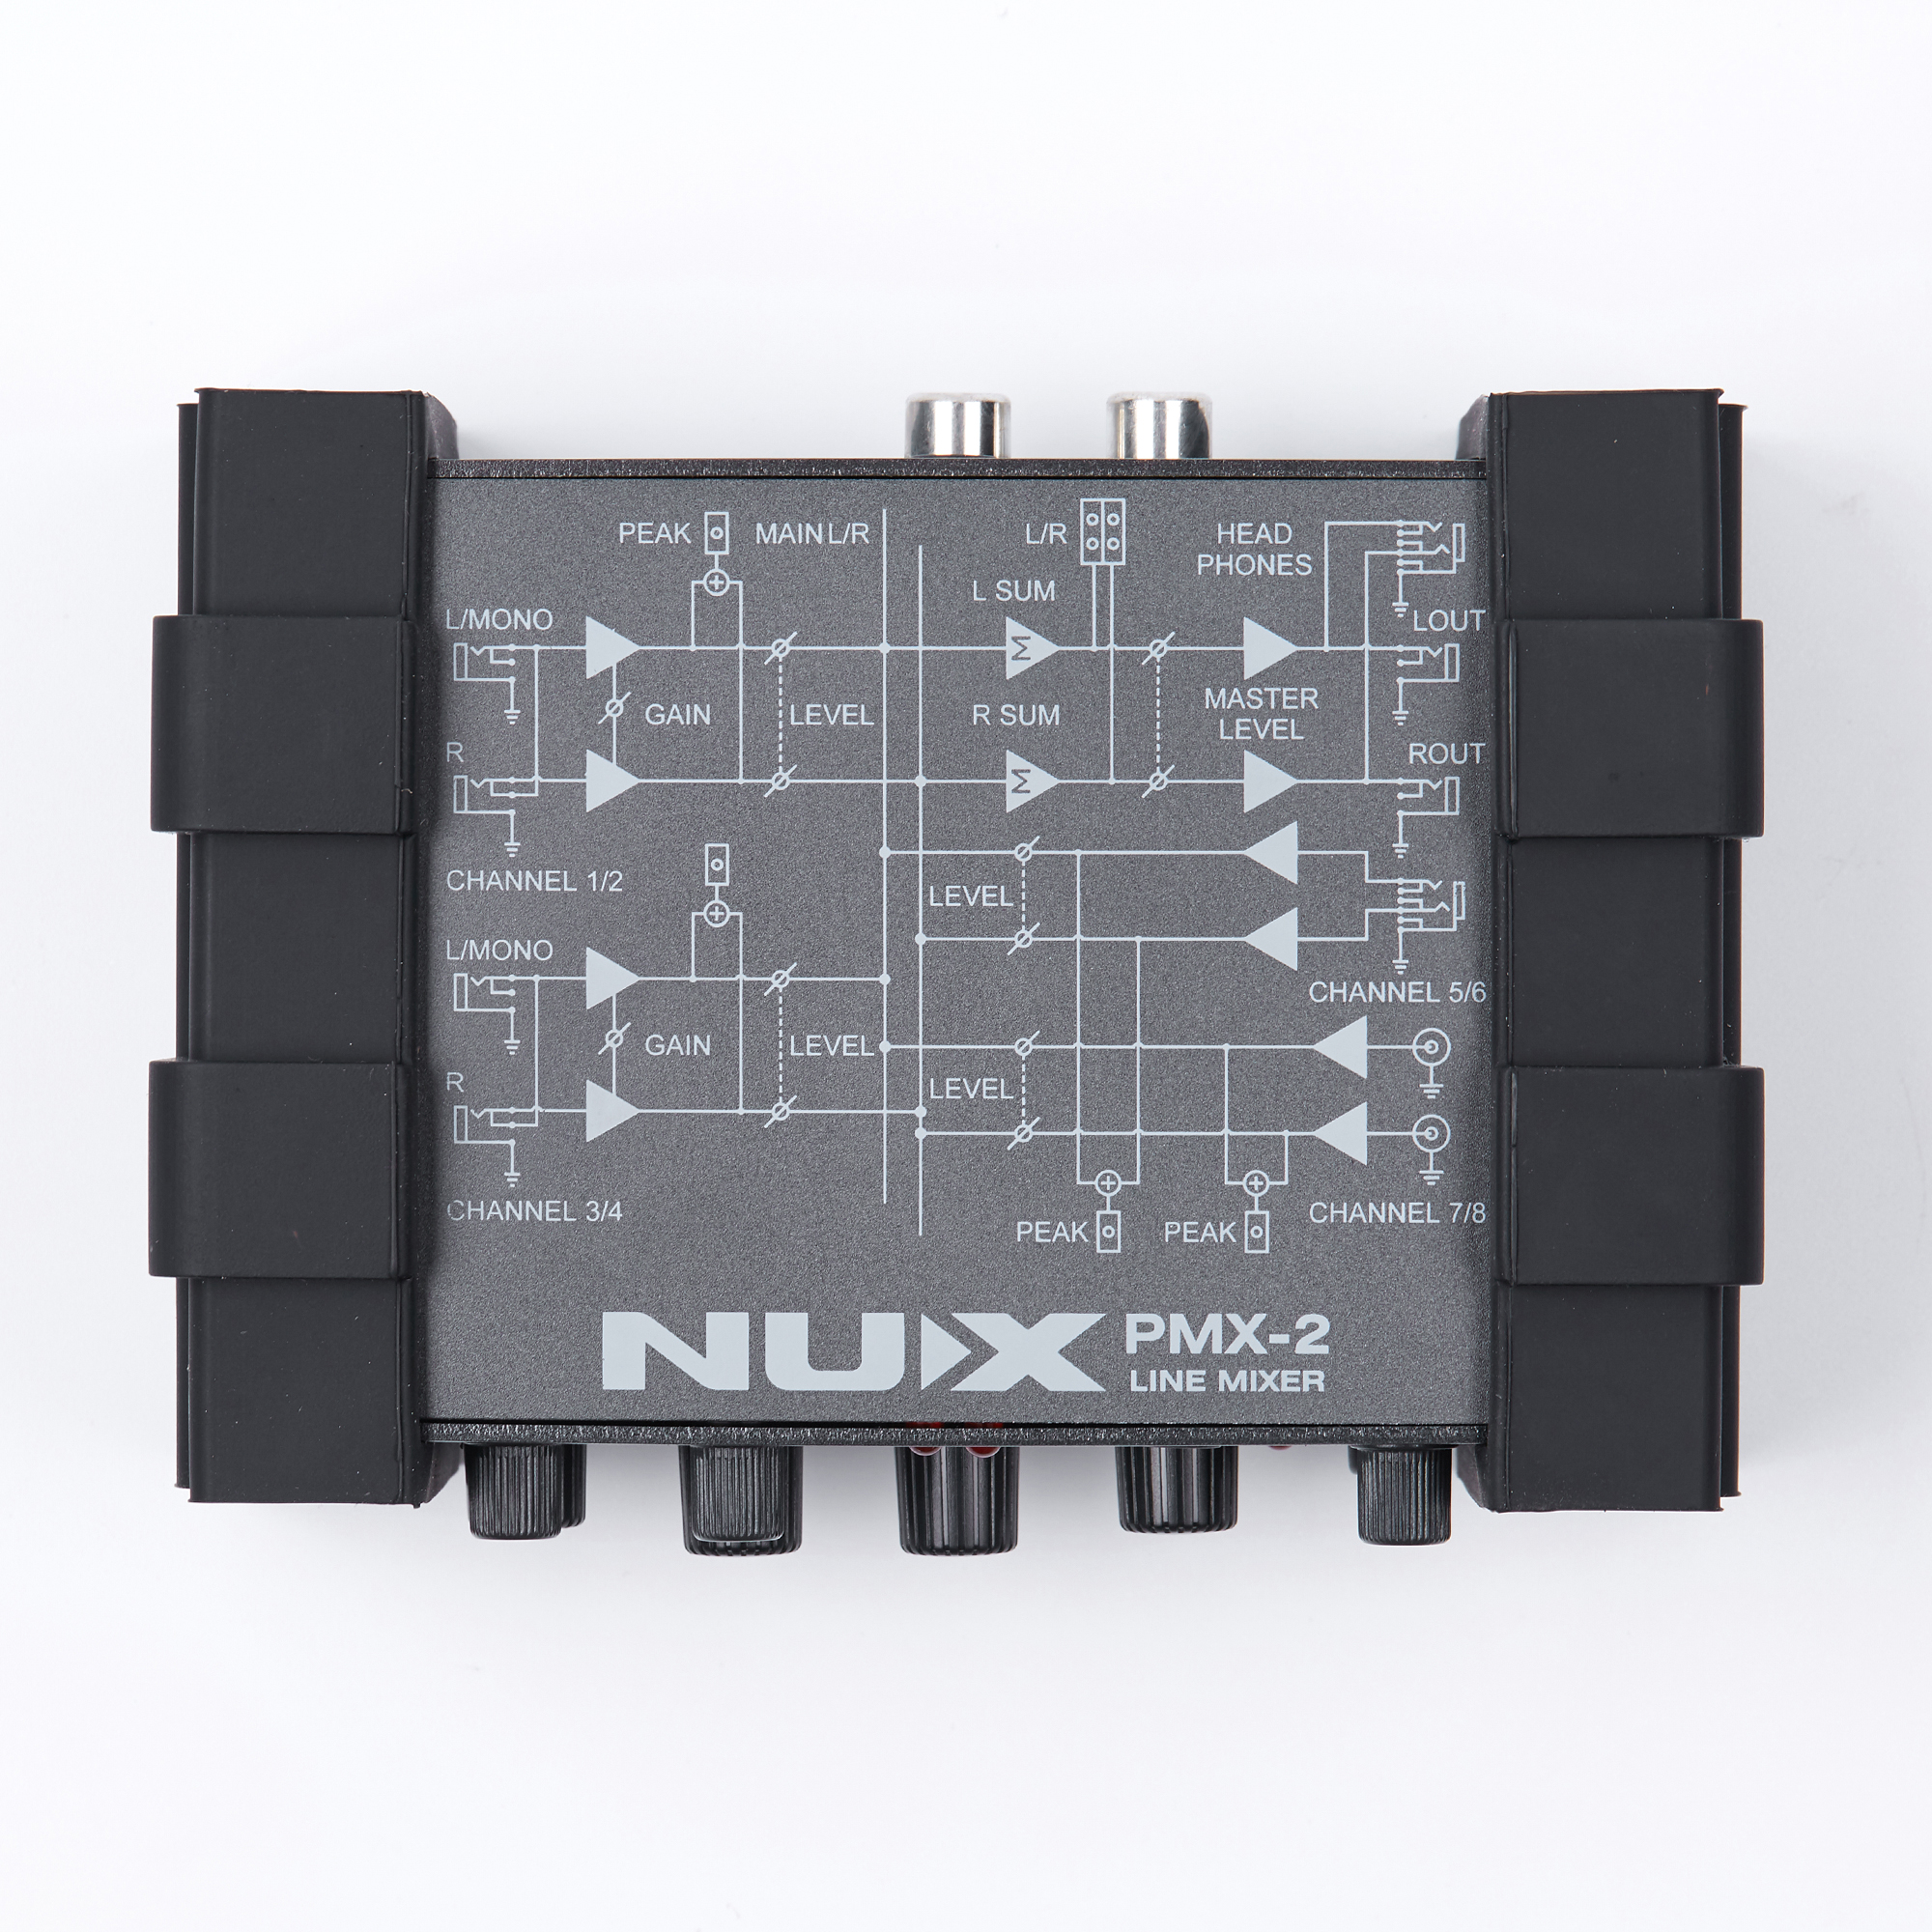 Gain Control 8 Inputs and 2 Outputs NUX PMX-2 Multi-Channel Mini Mixer 30 Musical Instruments Accessories for Guitar Bass Player death on blackheath